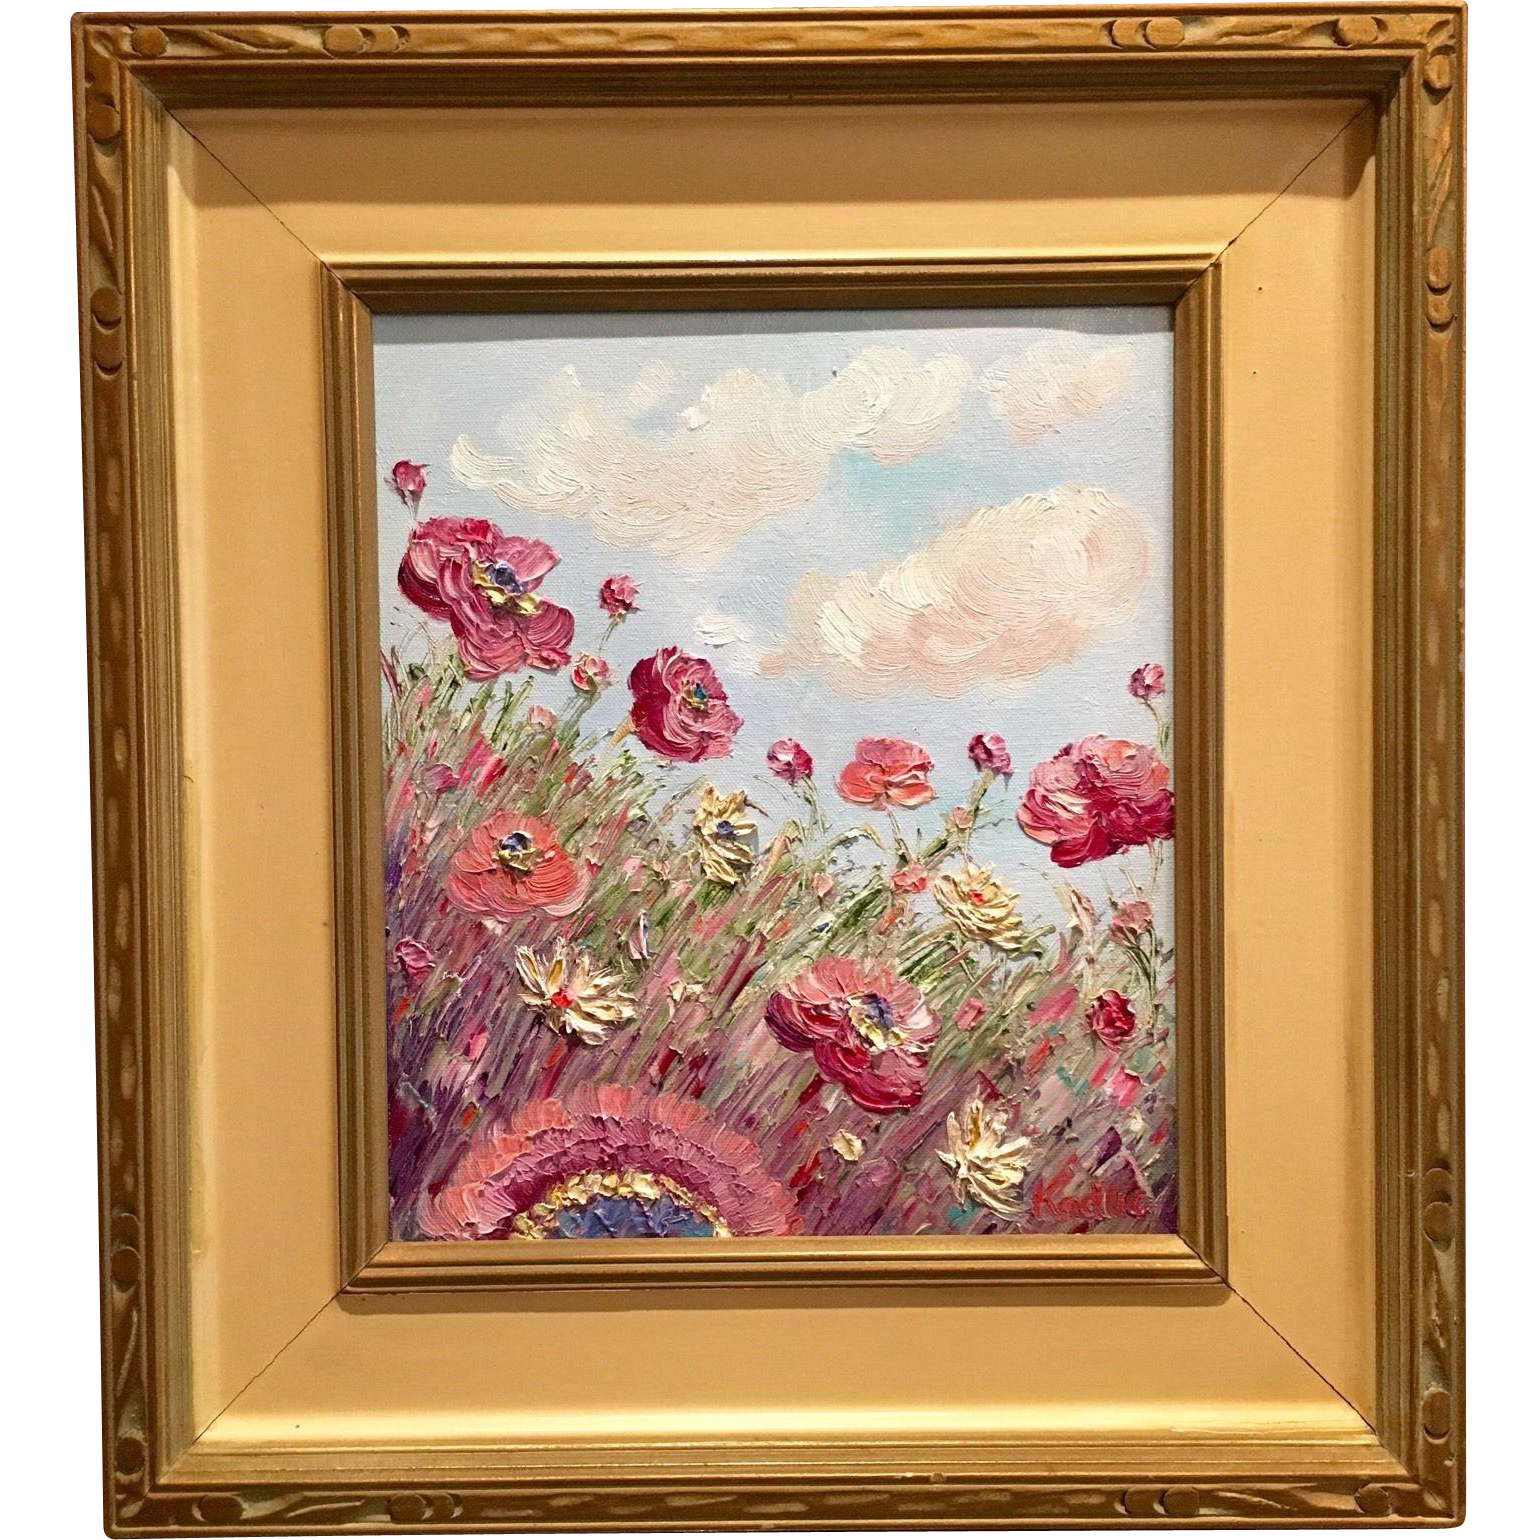 abstract wild poppies in vintage 1940s mid century modern frame original oil painting by artist sarah kadlic